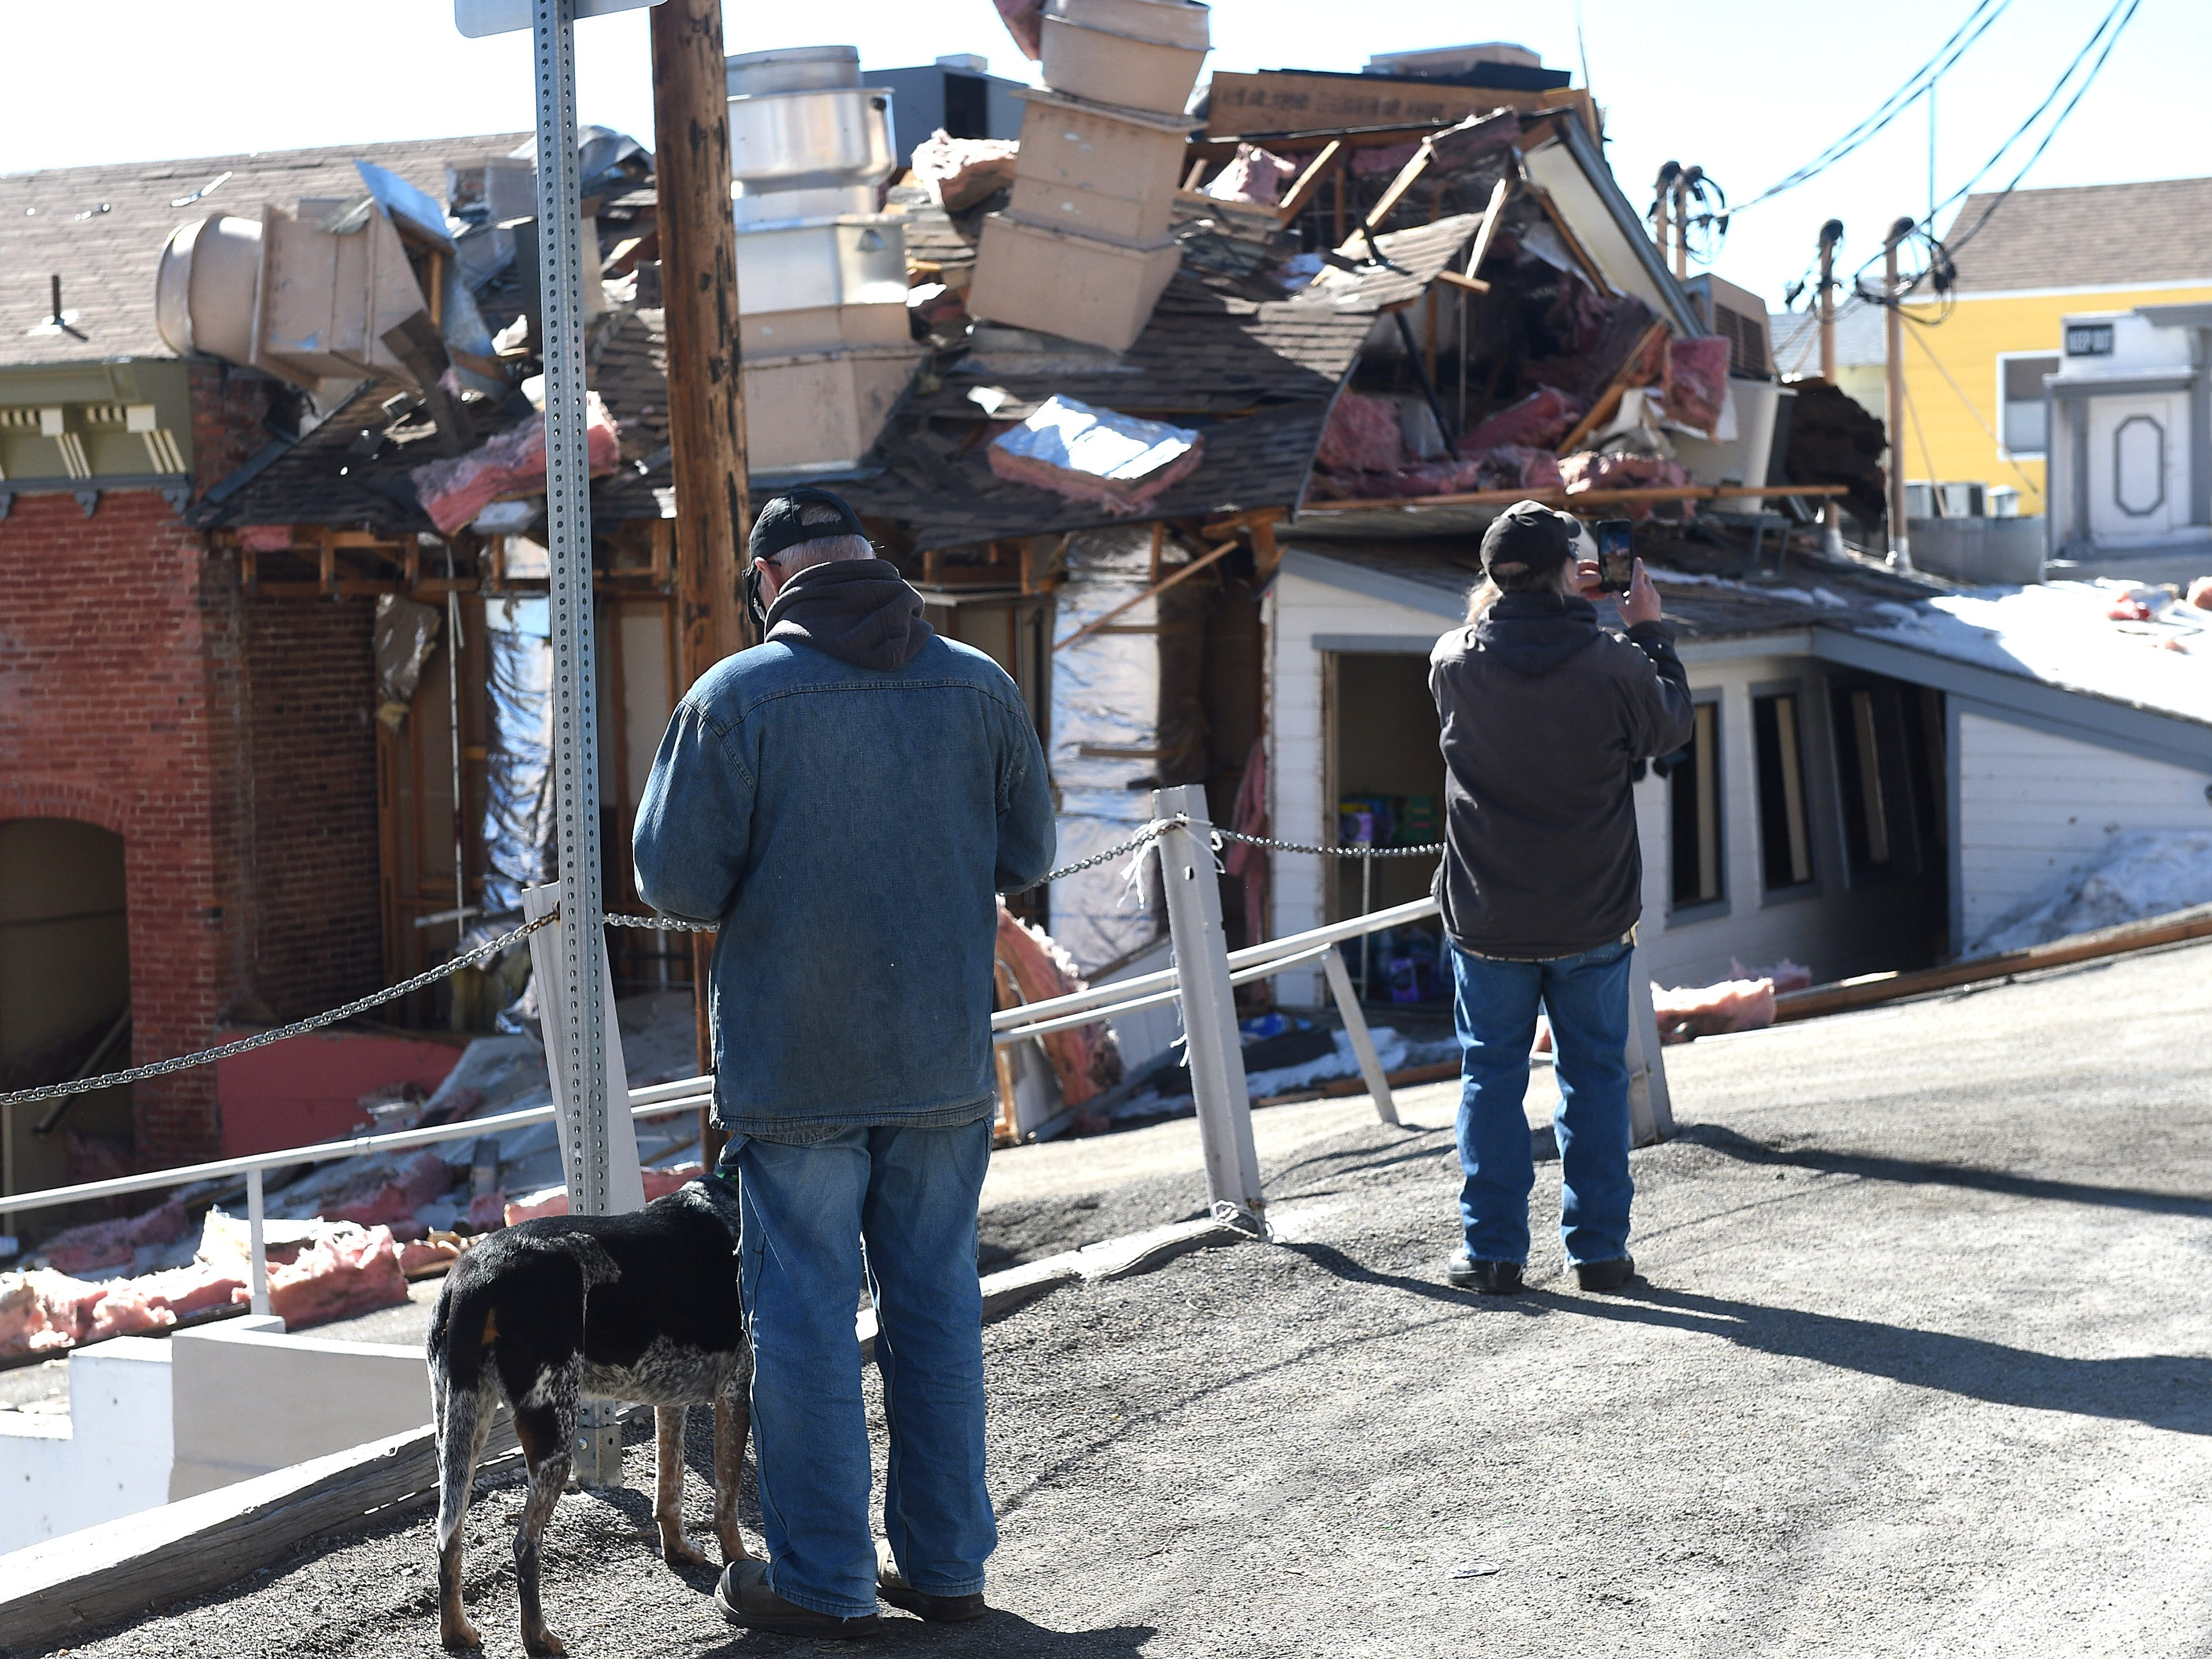 Local residents inspect the aftermath of an explosion at the historic Delta Saloon in Virginia City on March 12, 2019. One employee was in the building at the time of the explosion was not hurt.